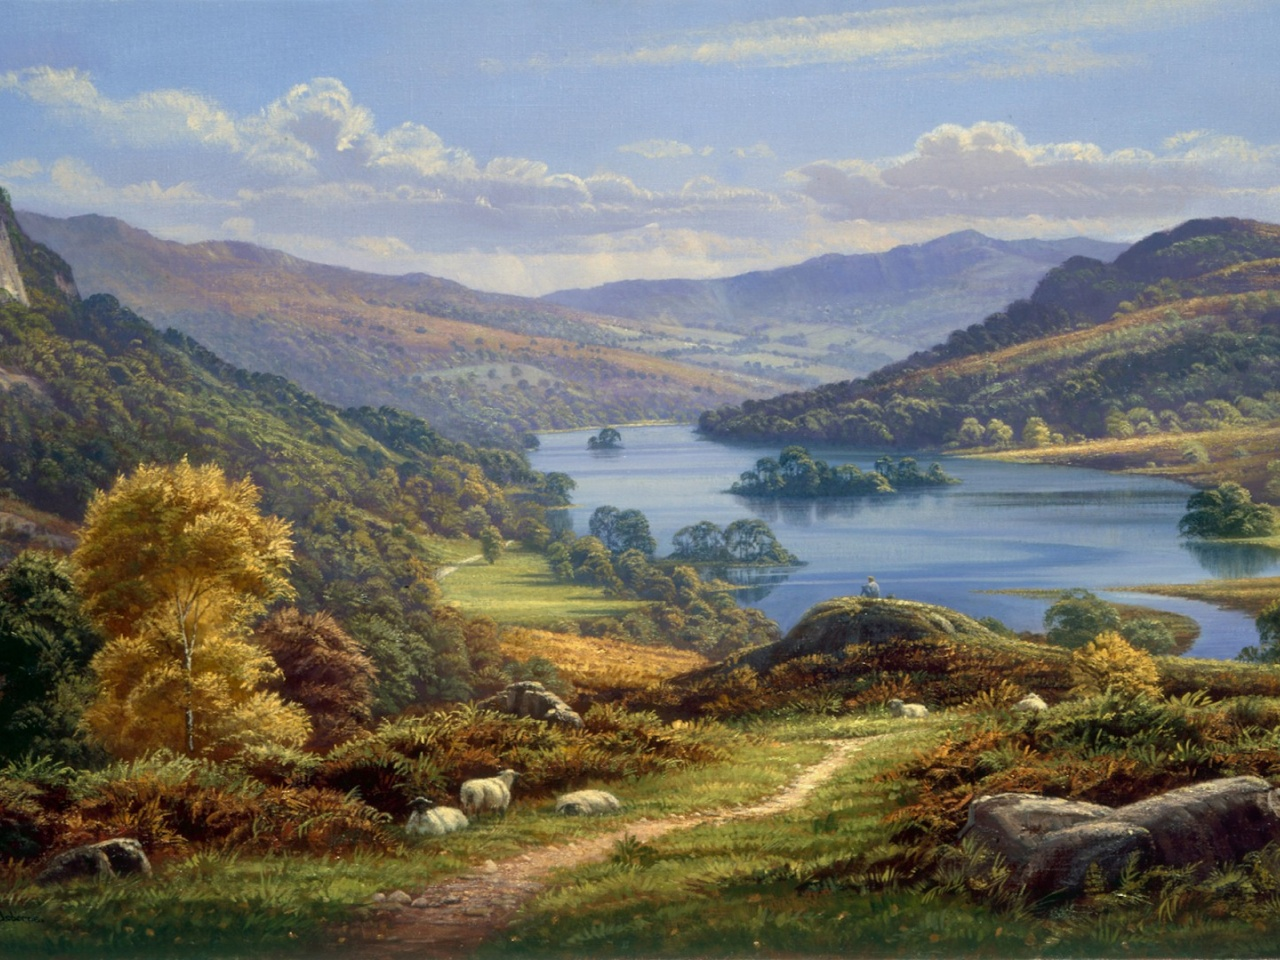 1280x960 Lake District England